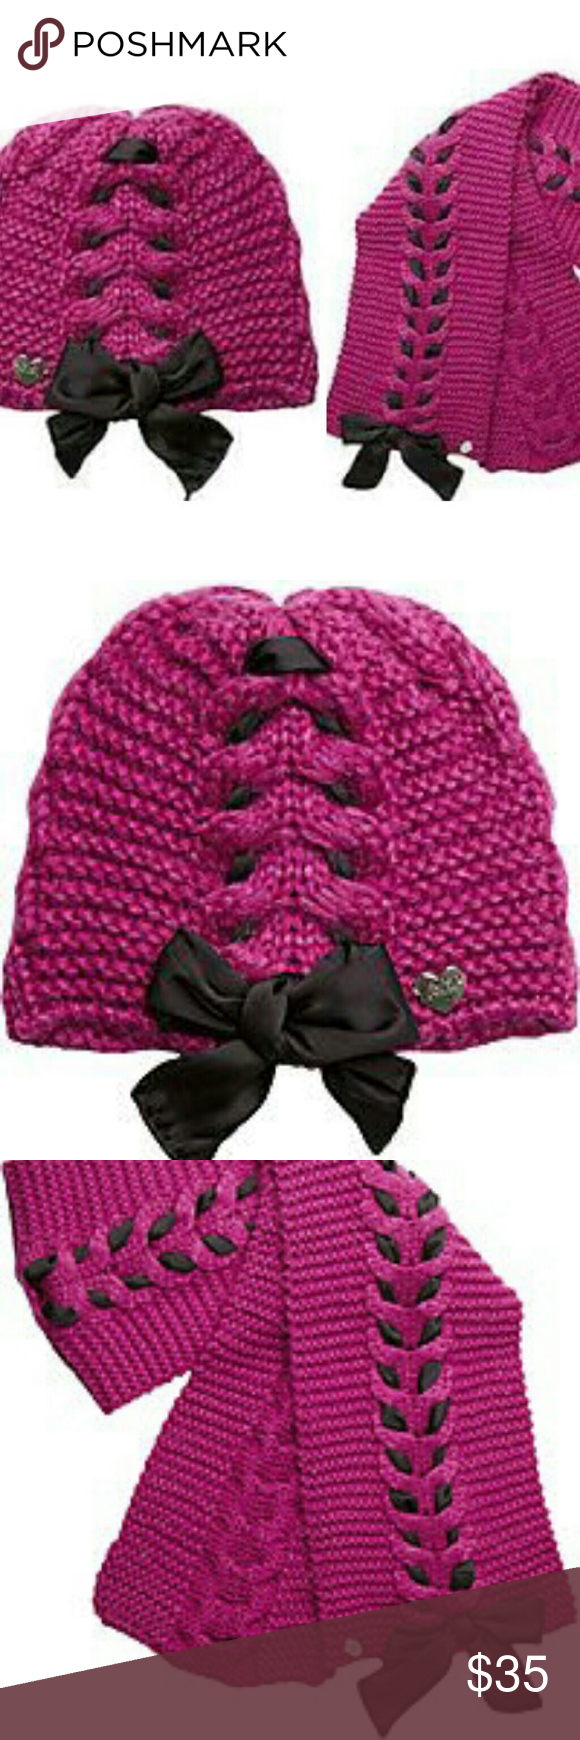 b2deb53b957 Gifts! Betsey Johnson Winter Hat   Scarf Set Pink New with tags ...